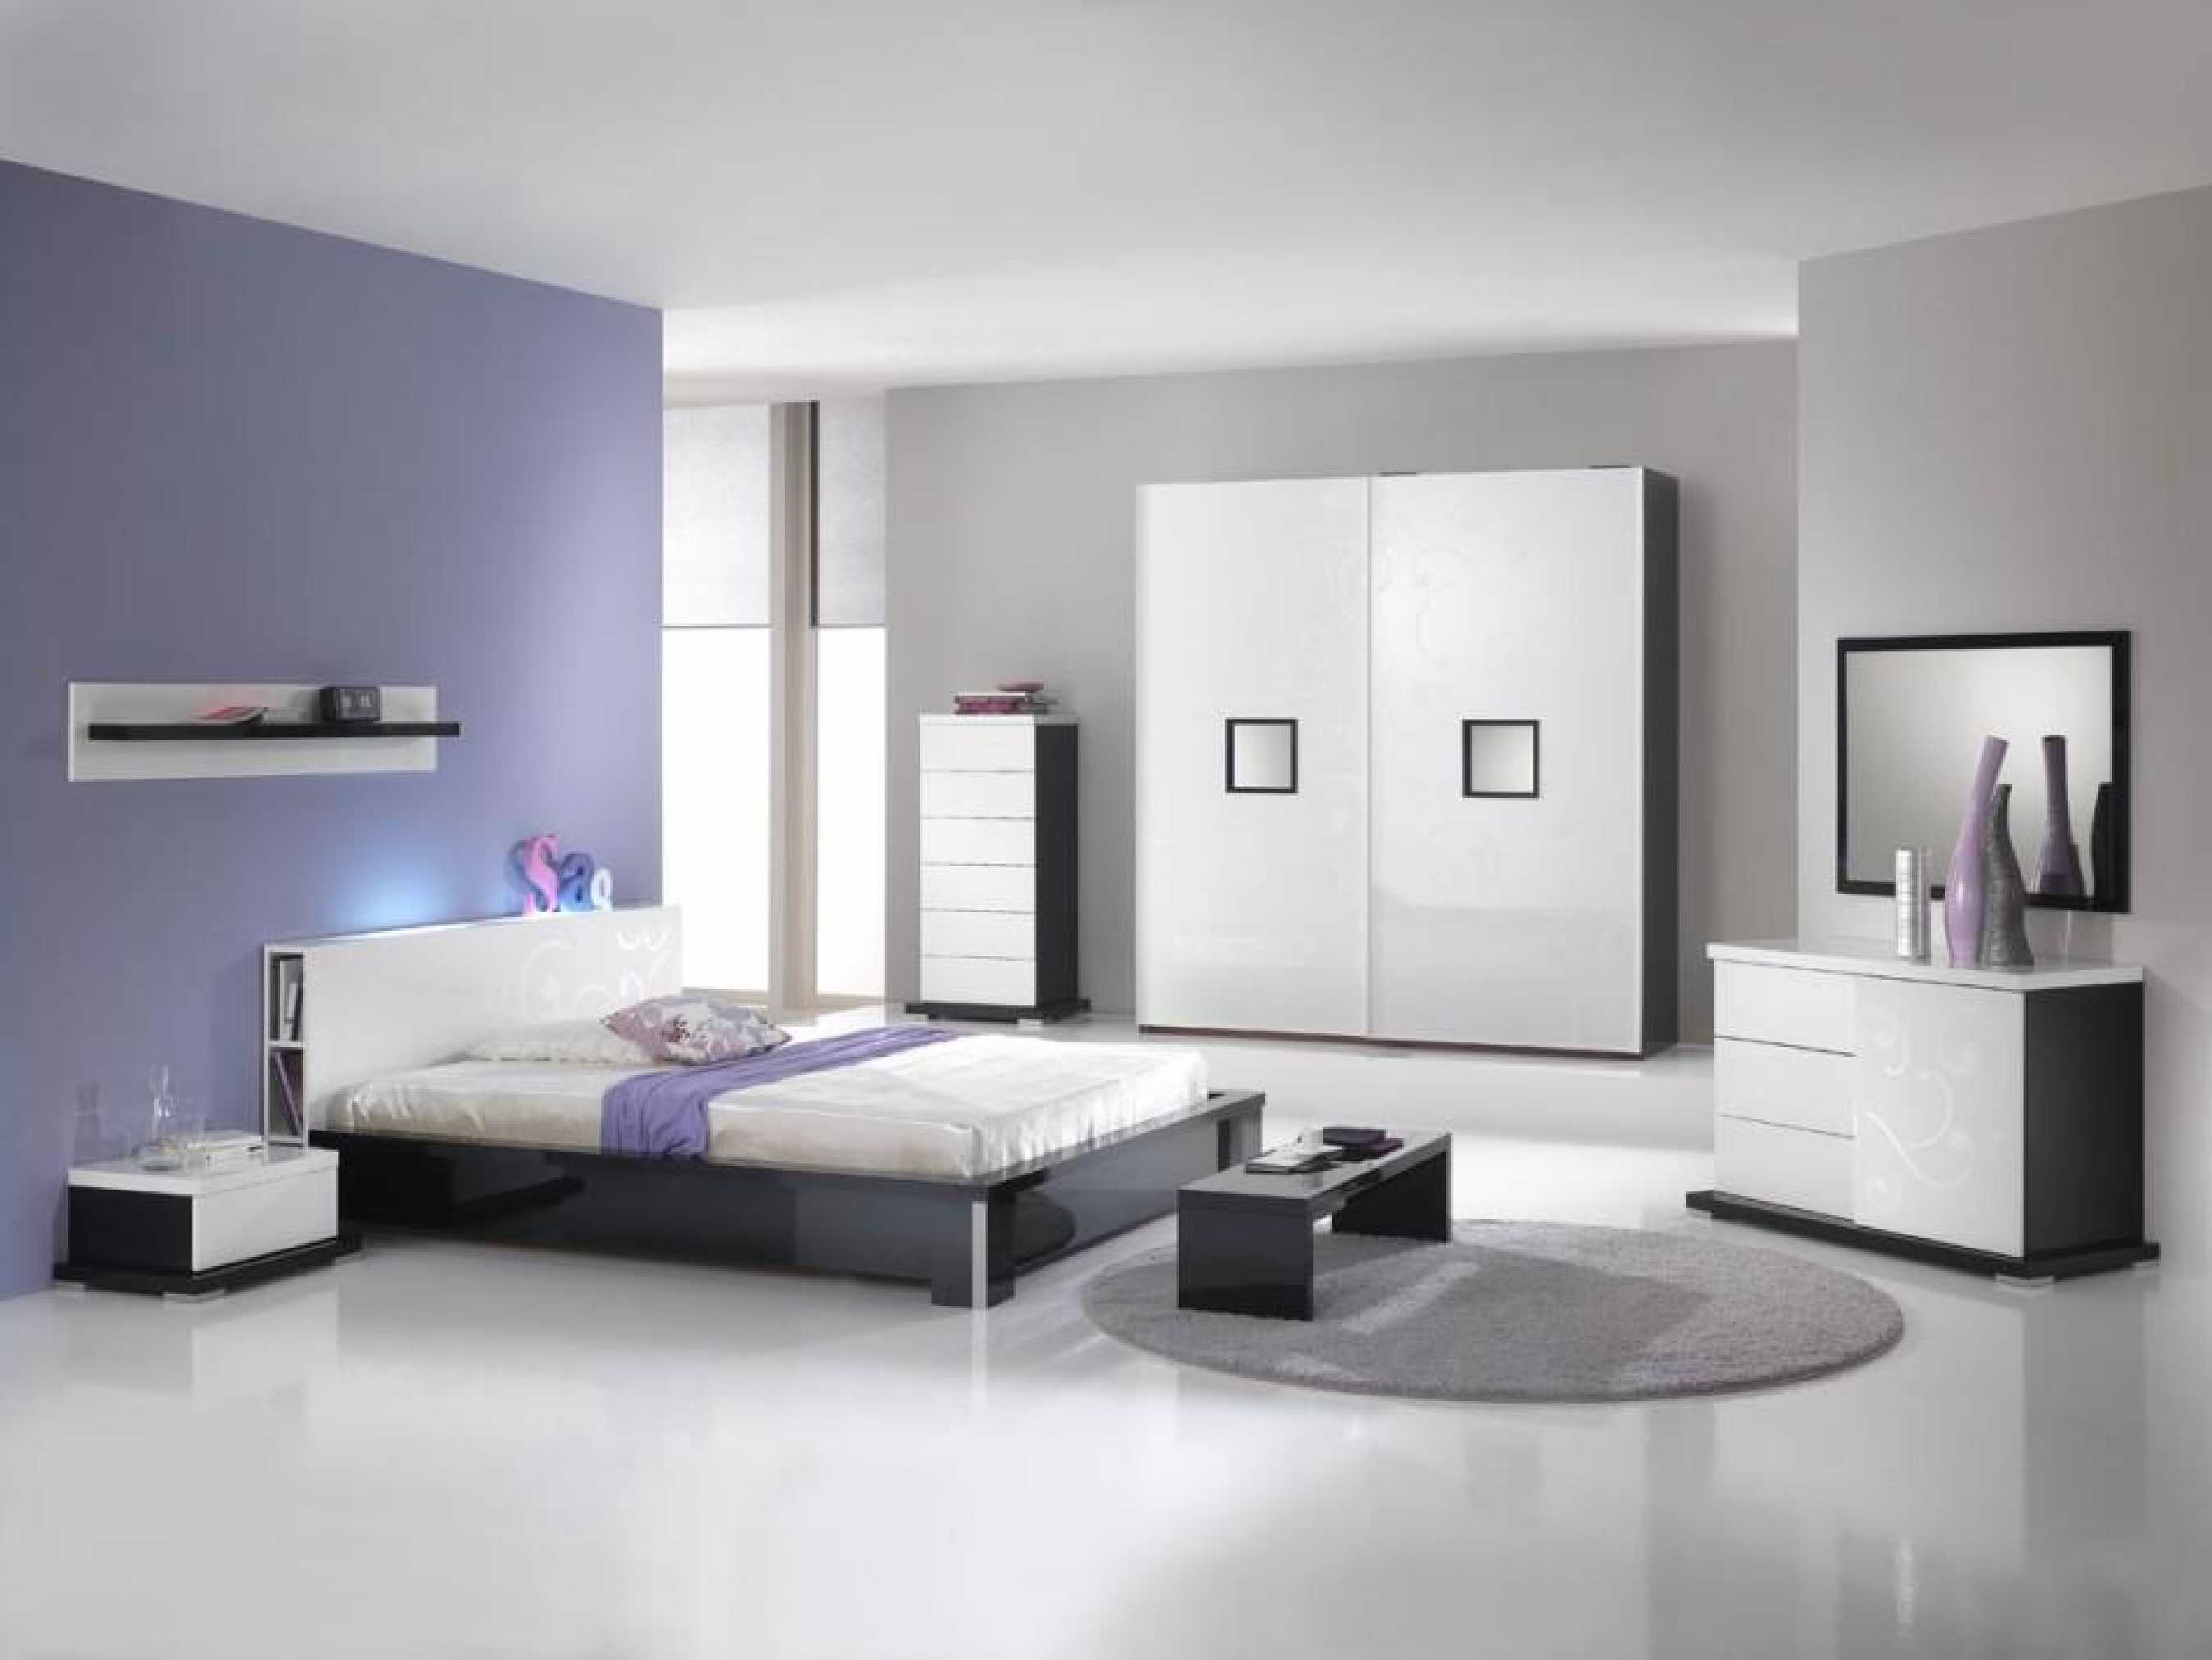 italian bedroom furniture 2014. 2016 Full Size Is 2700 × 2026 Pixels Italian Bedroom Furniture 2014 R